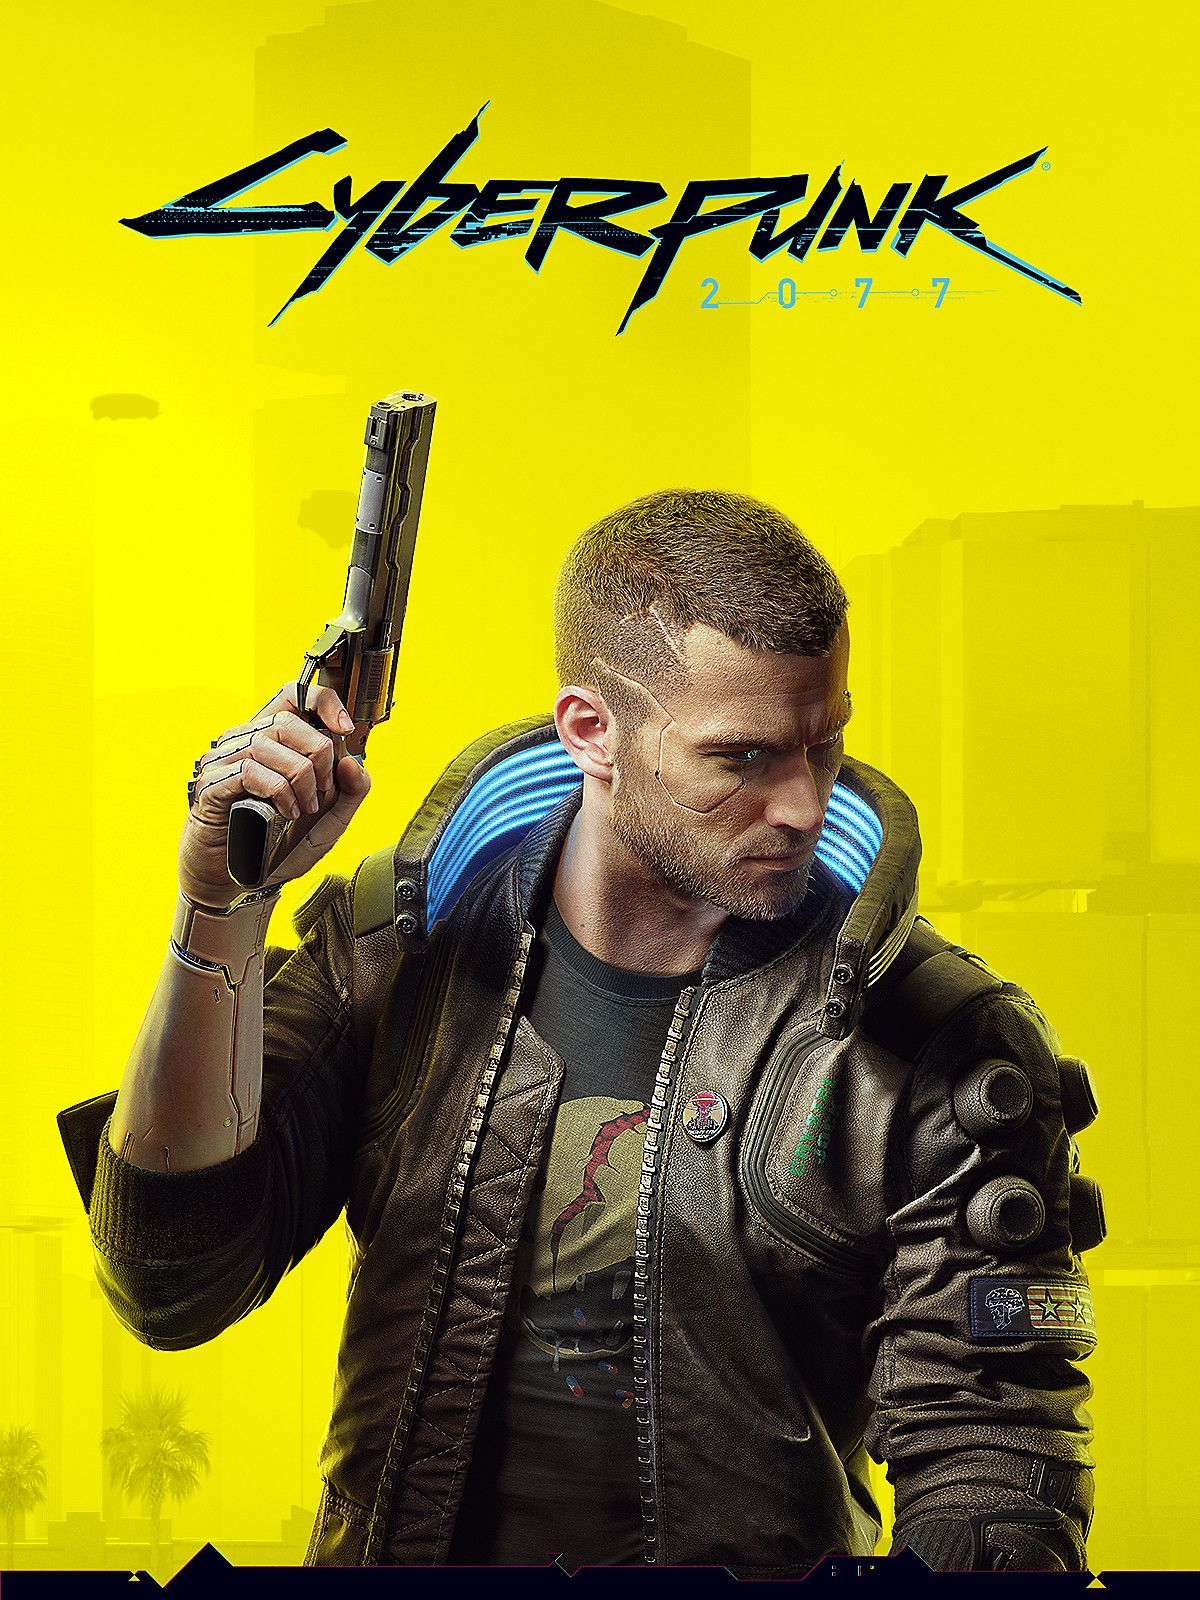 Check out the new trailer for Cyberpunk 2077 and find out